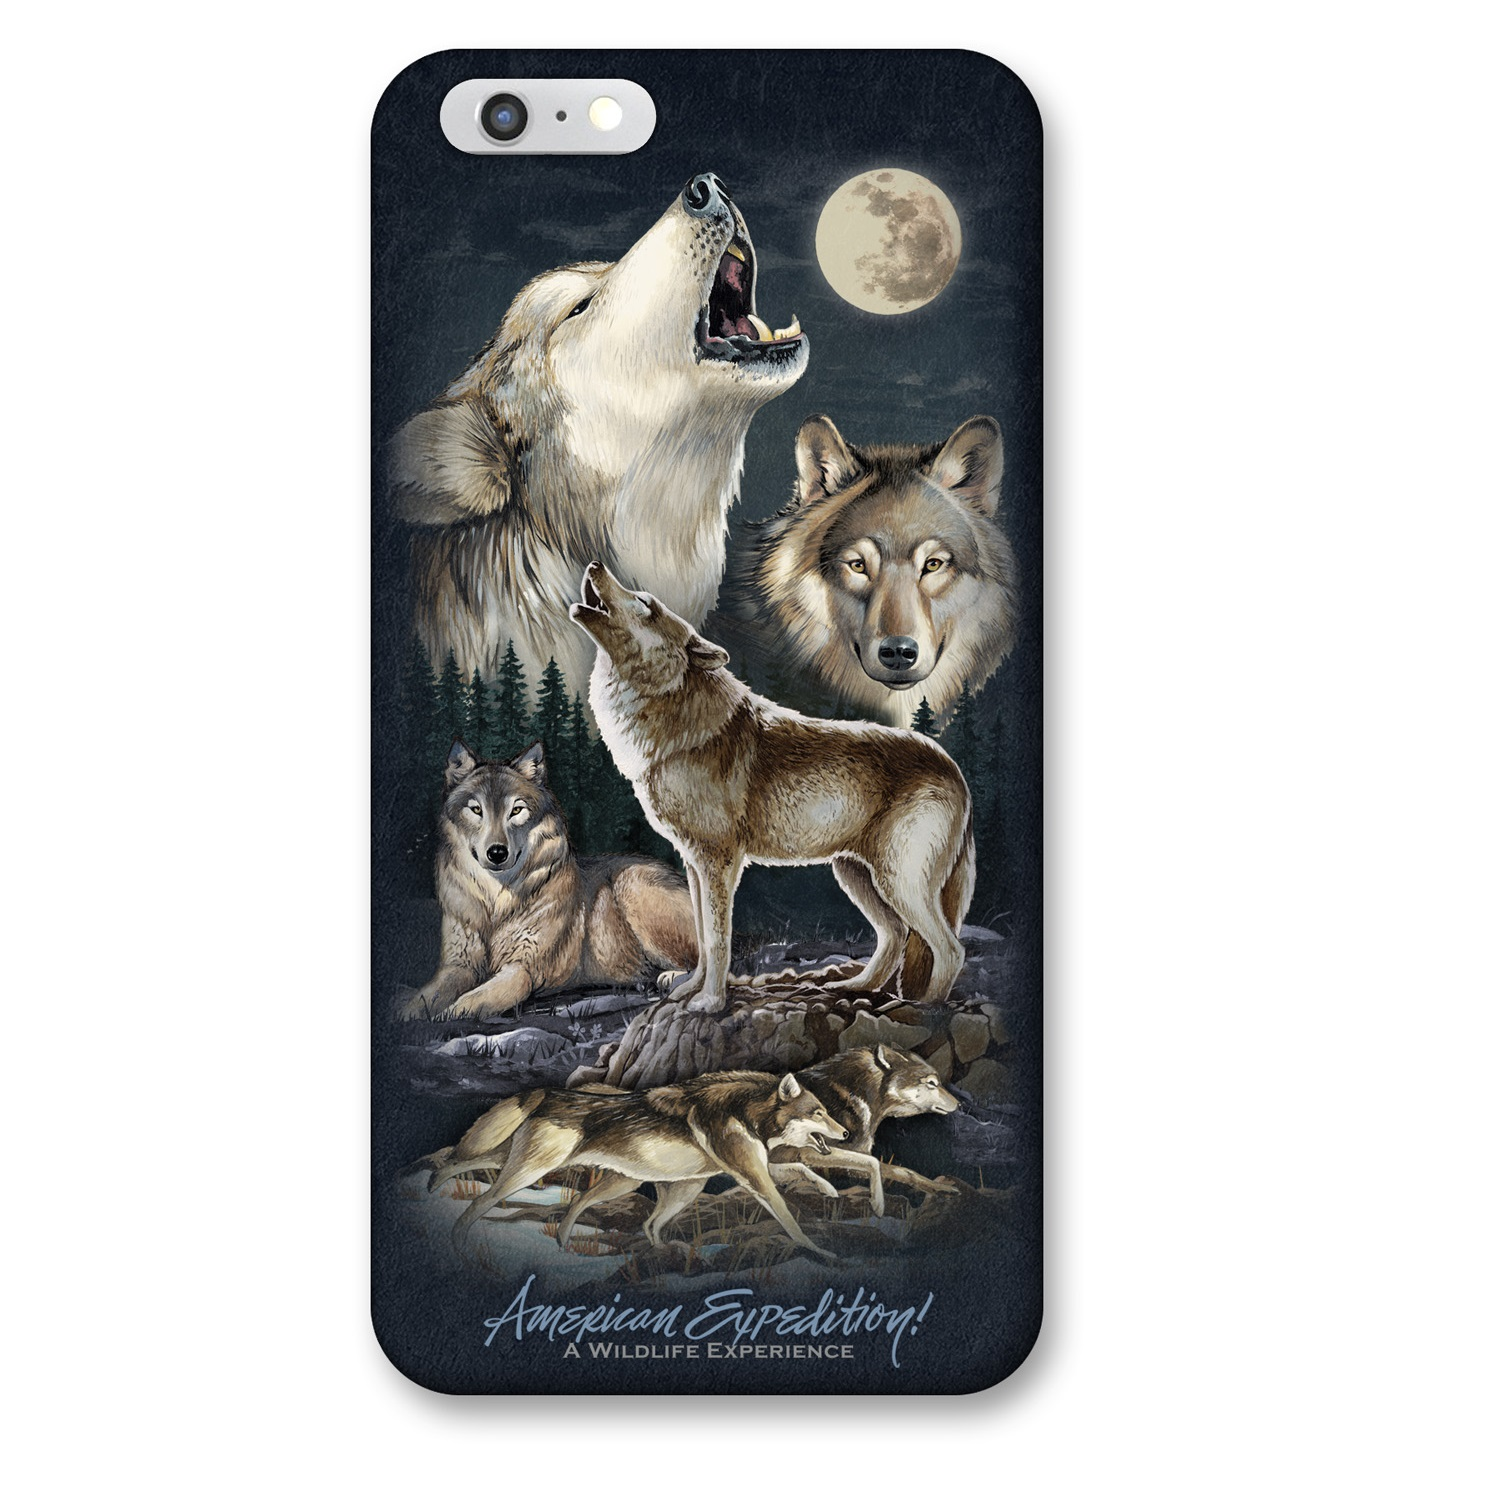 American Expedition iPhone 6 Cover - Gray Wolf Collage